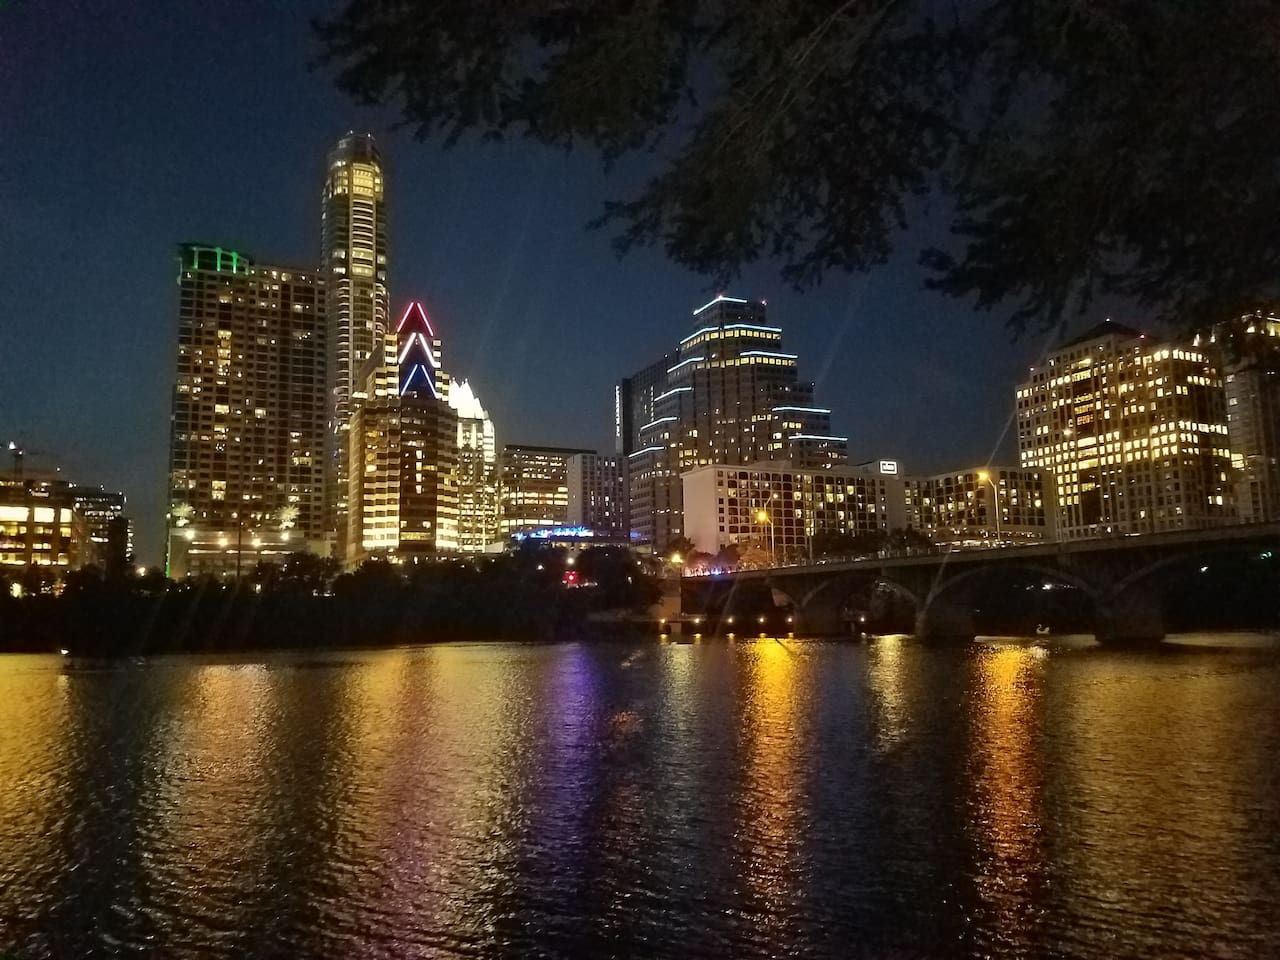 A view of downtown from the pedestrian path along the south side of Lady bird lake. This is my most favorite spot to take a walk in Austin. The bridge in the photo is where those famous Austin bats show up.